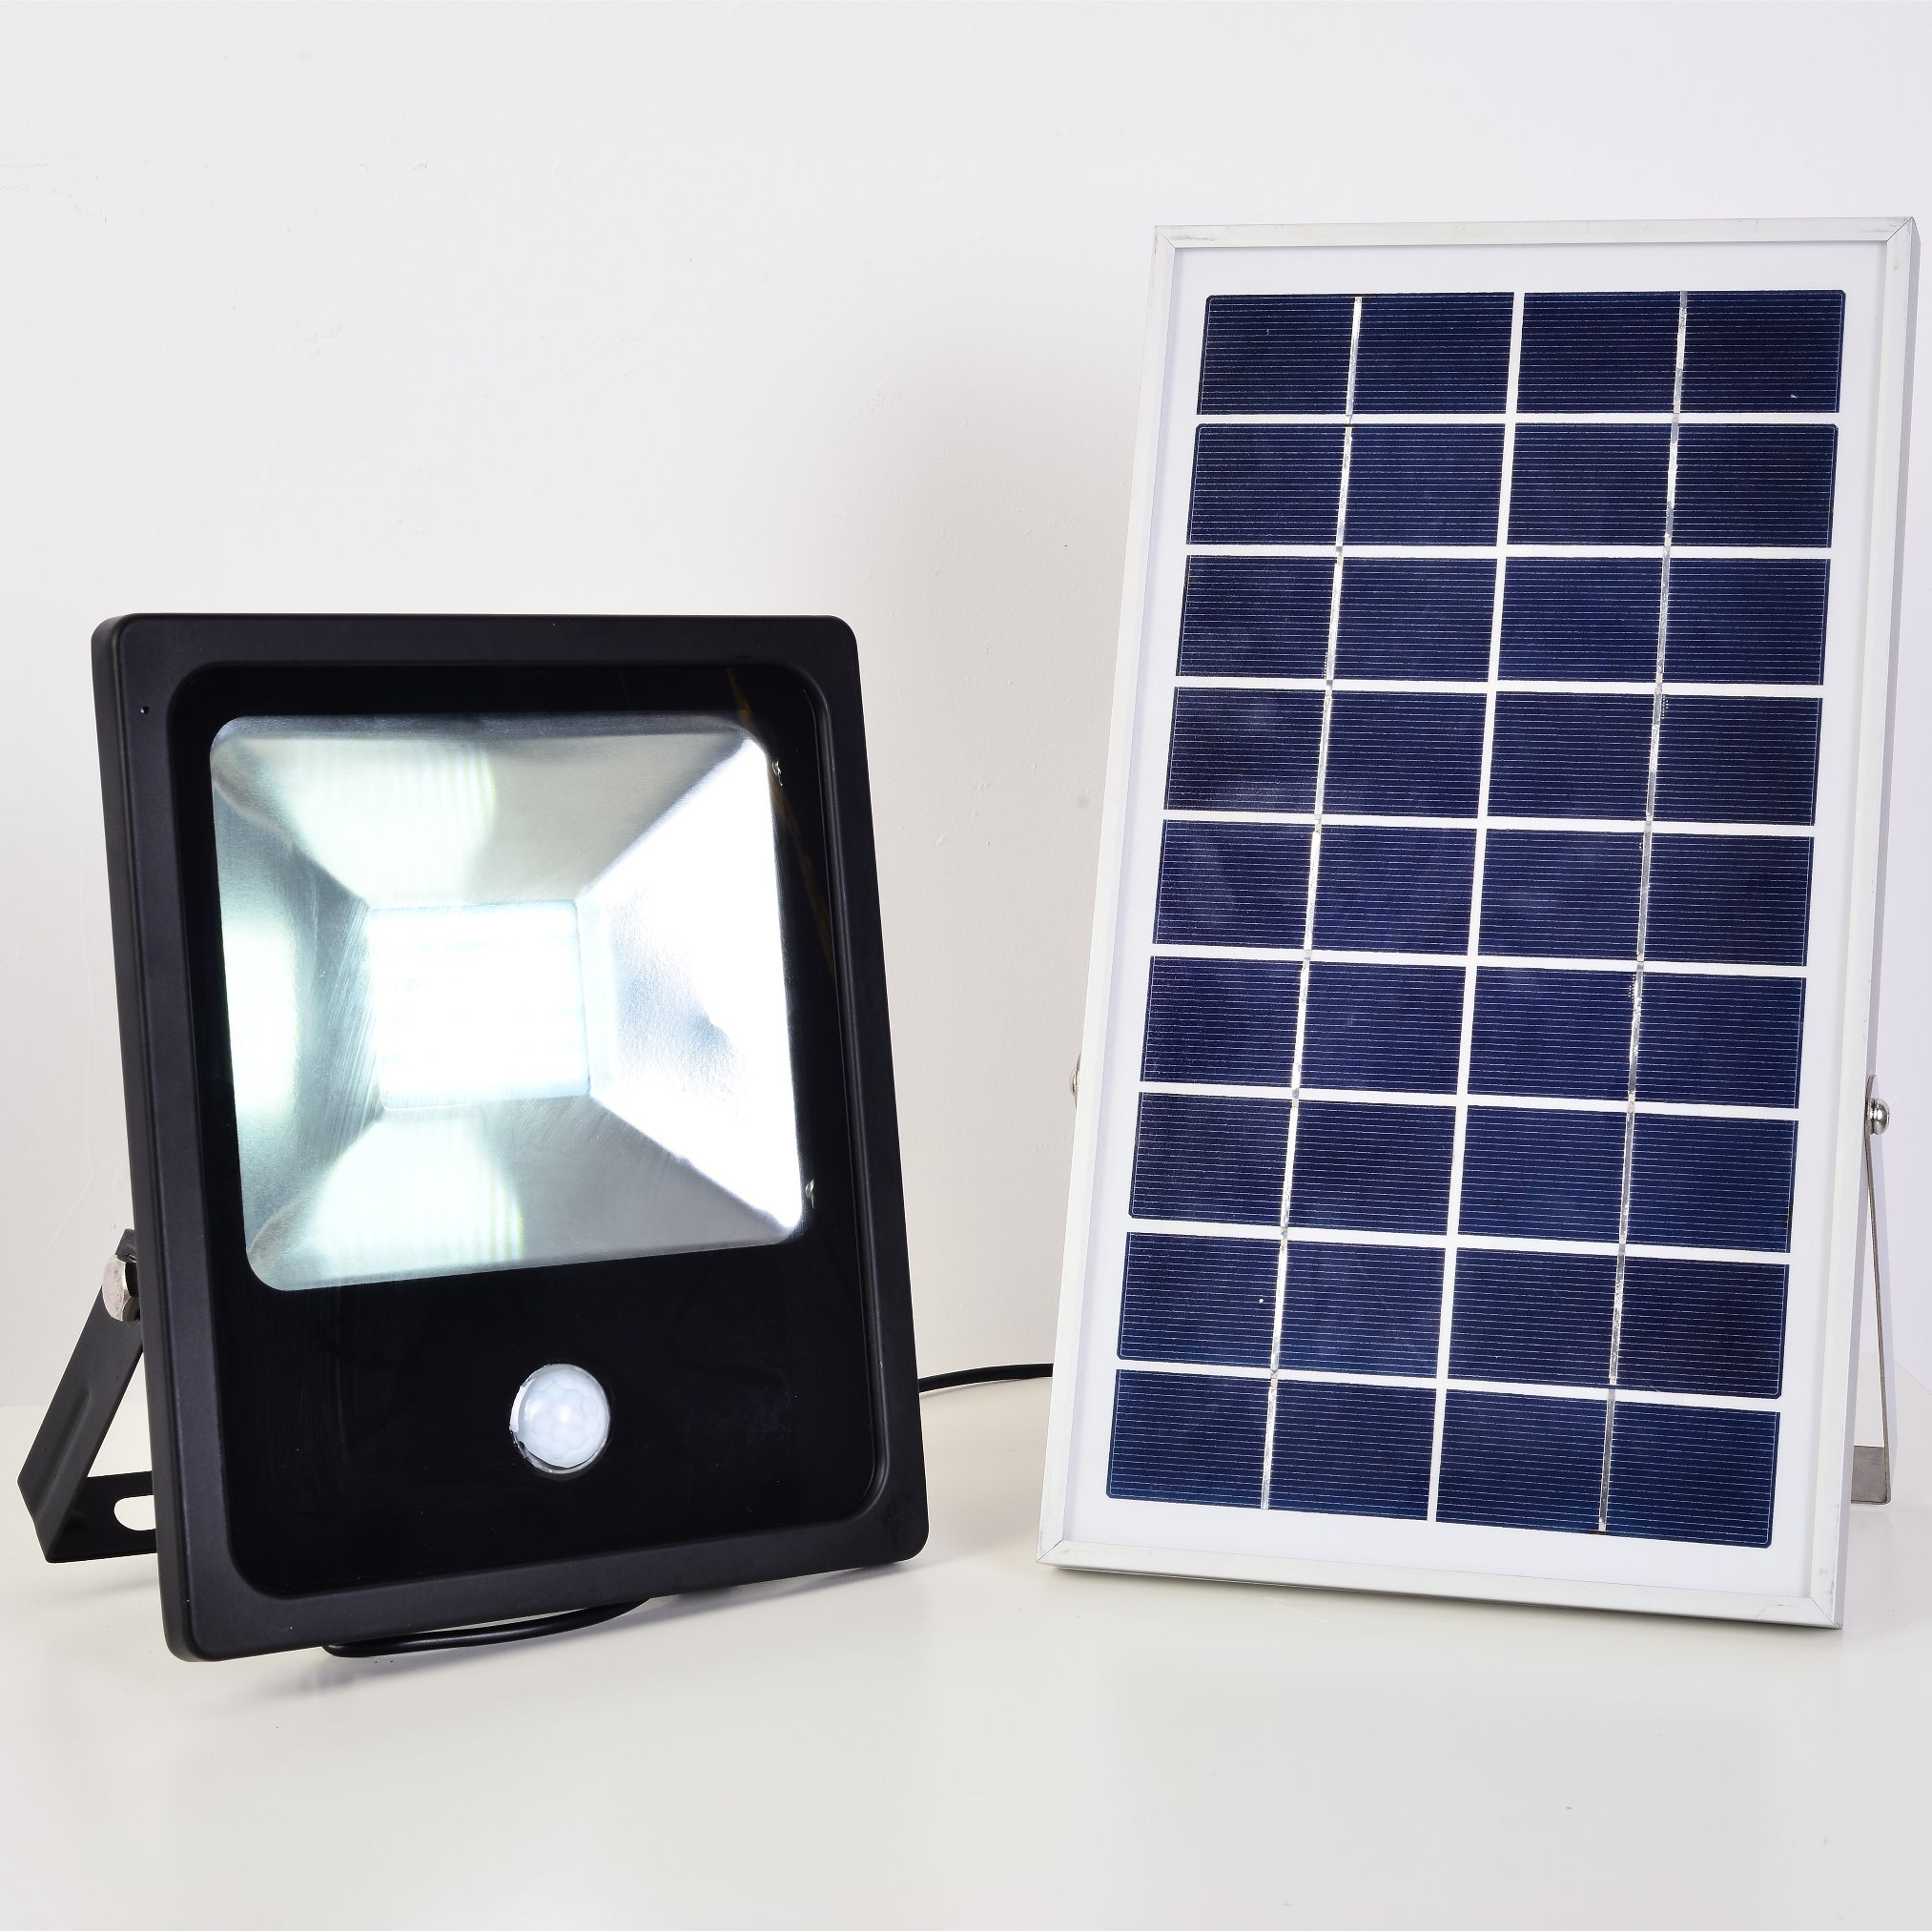 ebay buy us light floodlight detector spot sensor lighting solar led dual en ru motion security outdoor